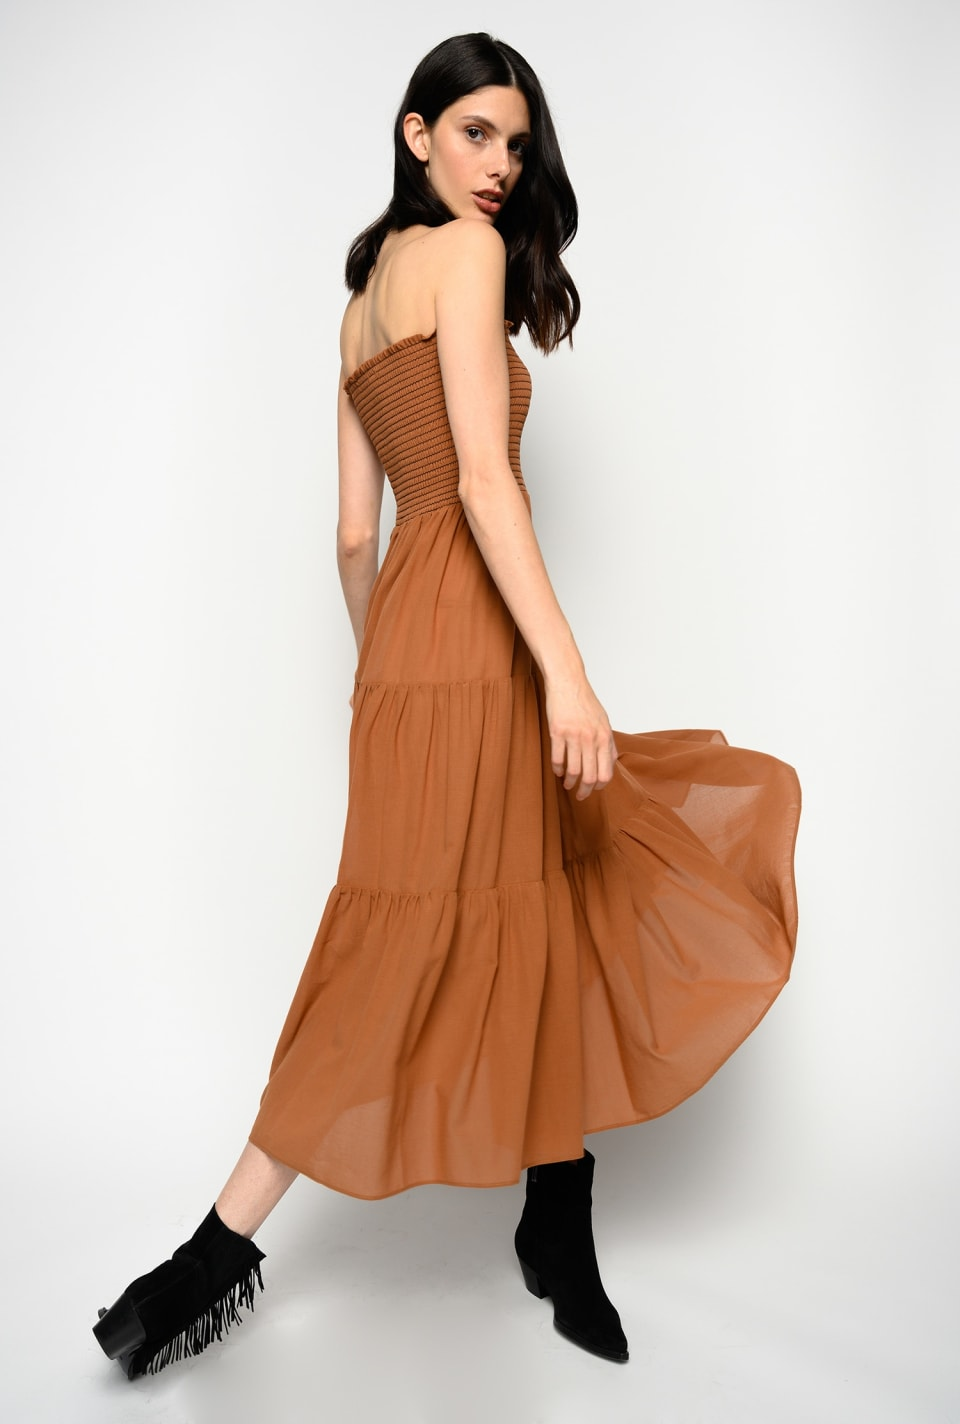 Crepe dress-skirt